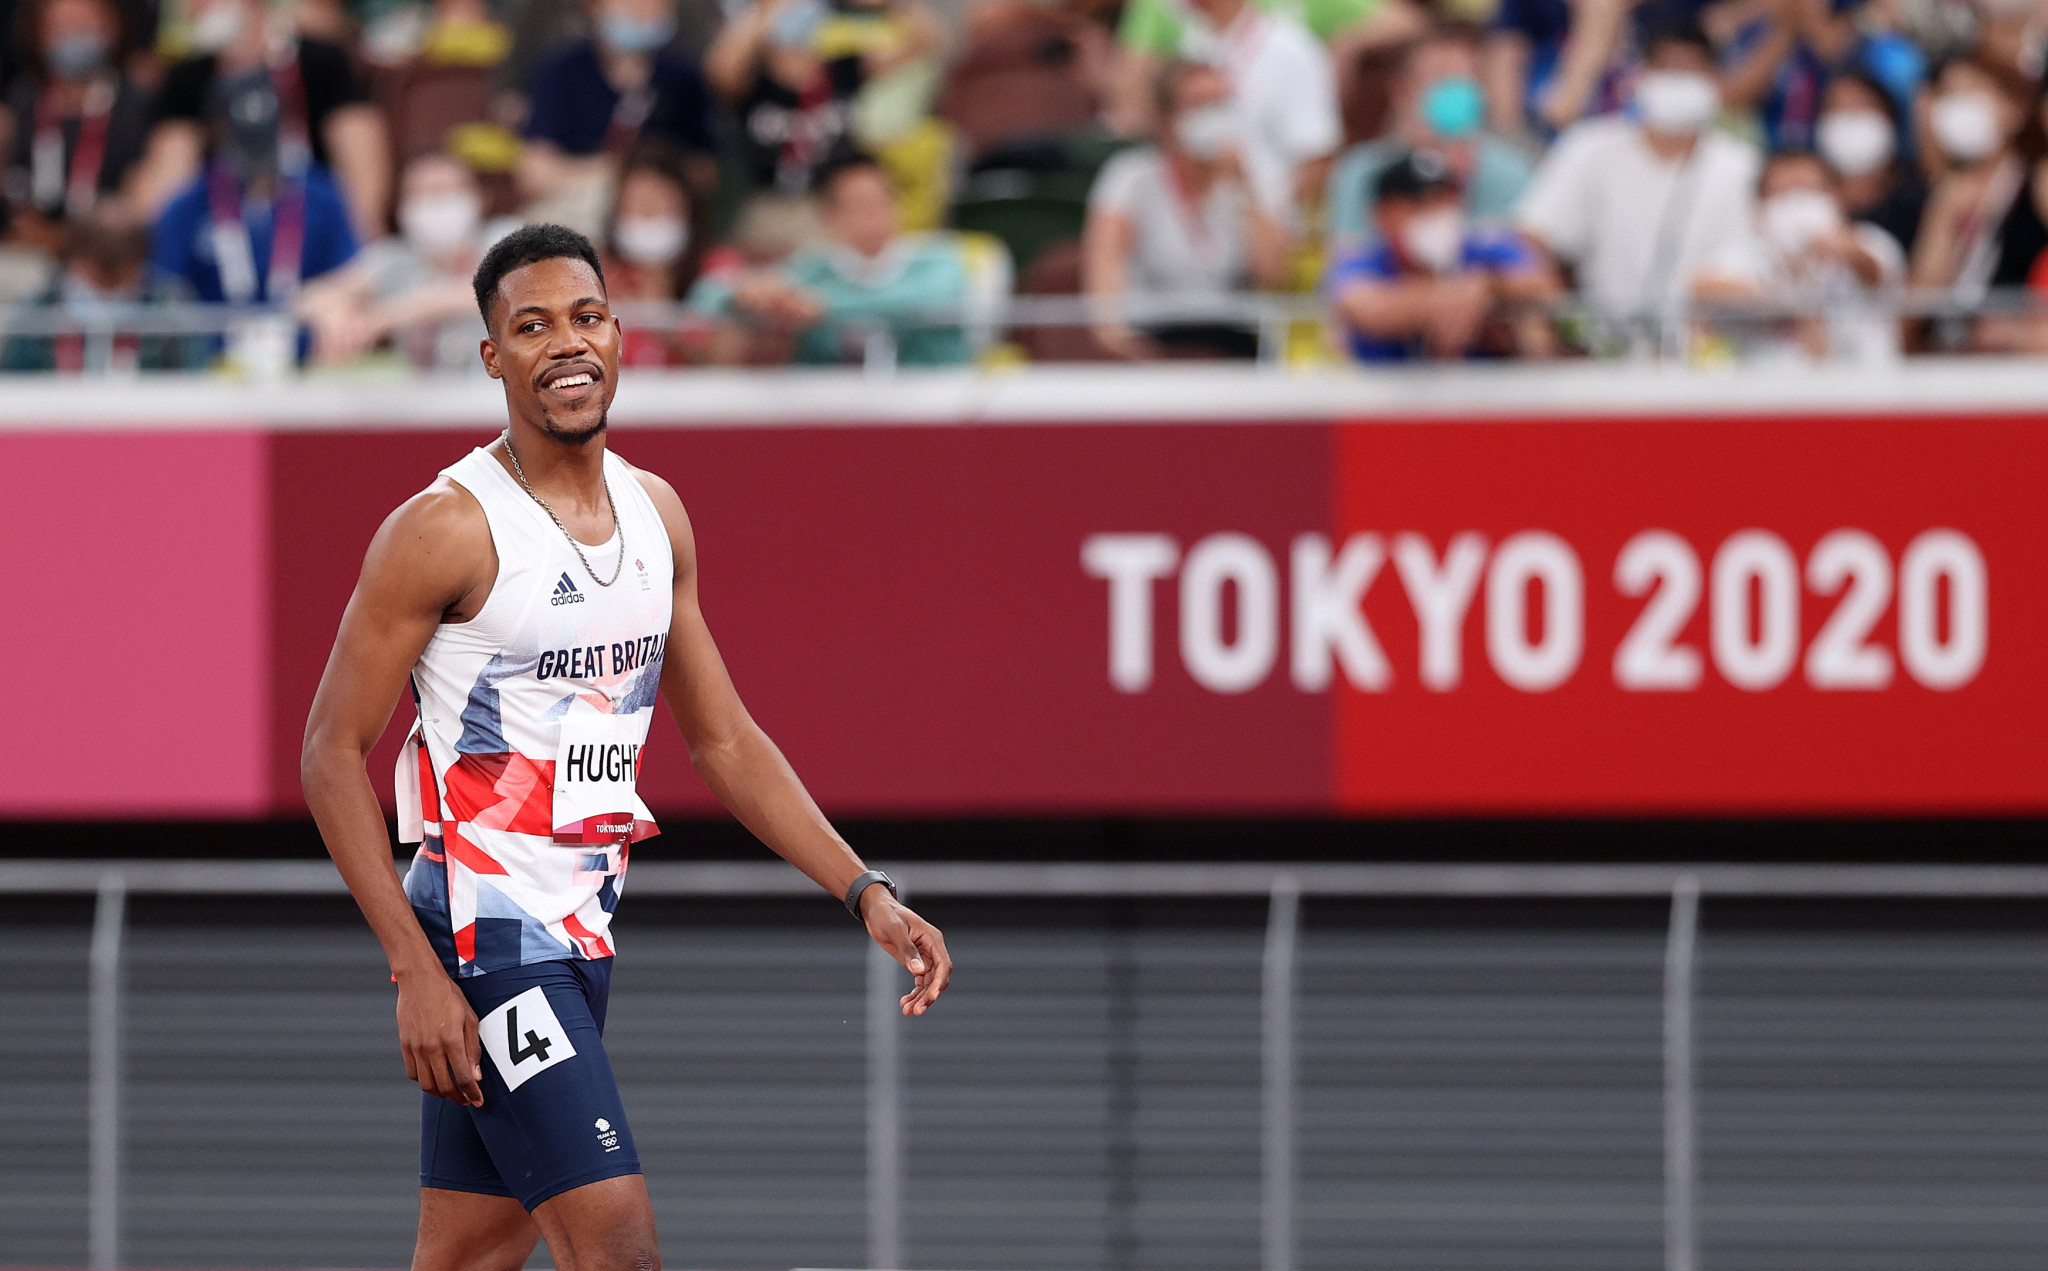 Anguilla-born Zharnel Hughes was disqualified from the men's 100m final at Tokyo 2020 and could now lose a relay medal ©Getty Images